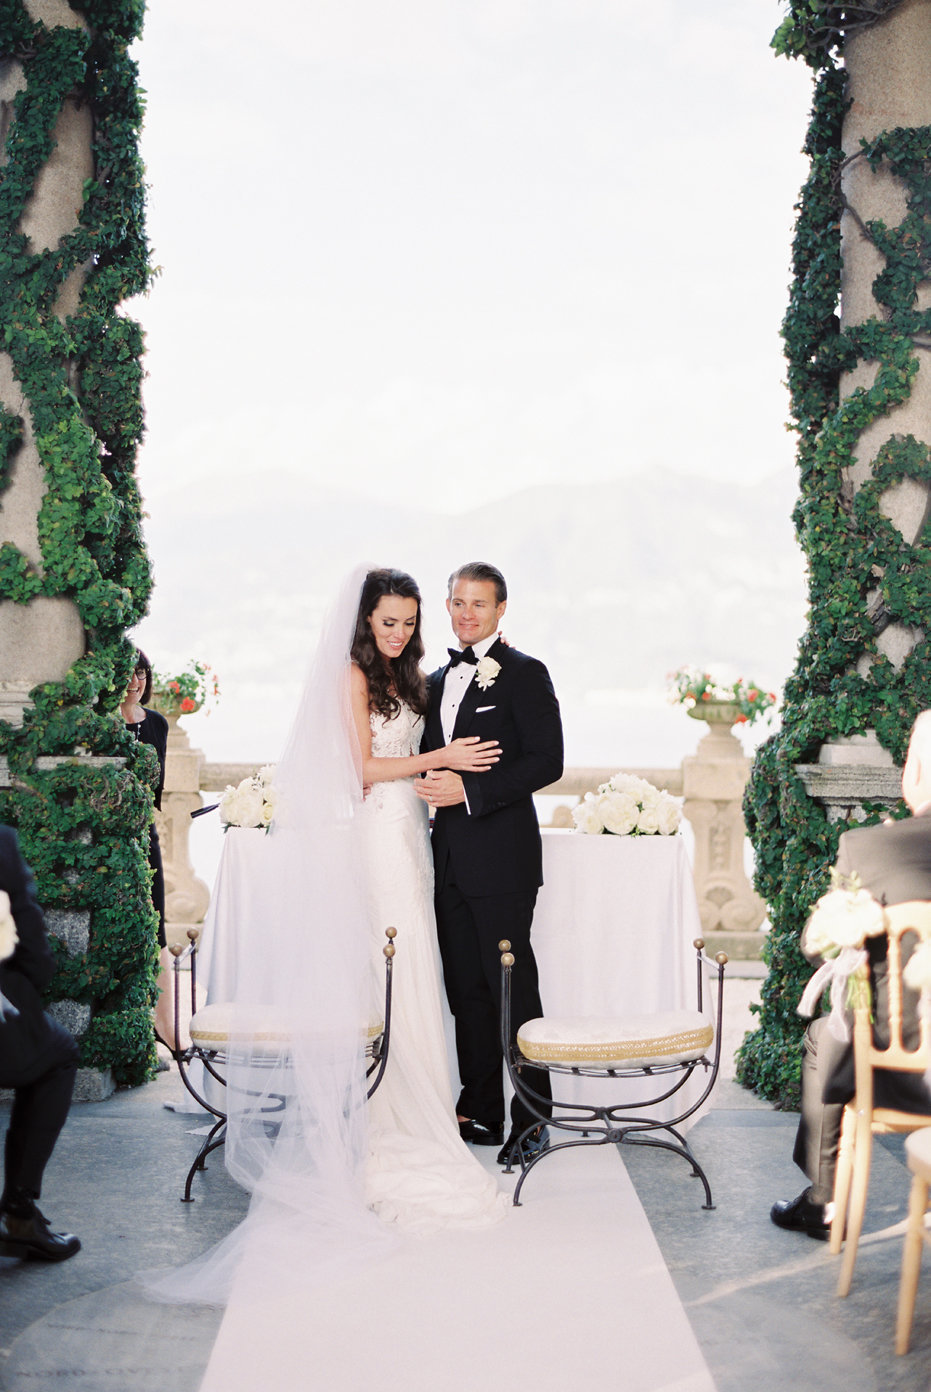 lake_como_italy_villa_balbianello_destination_wedding_melanie_gabrielle_057